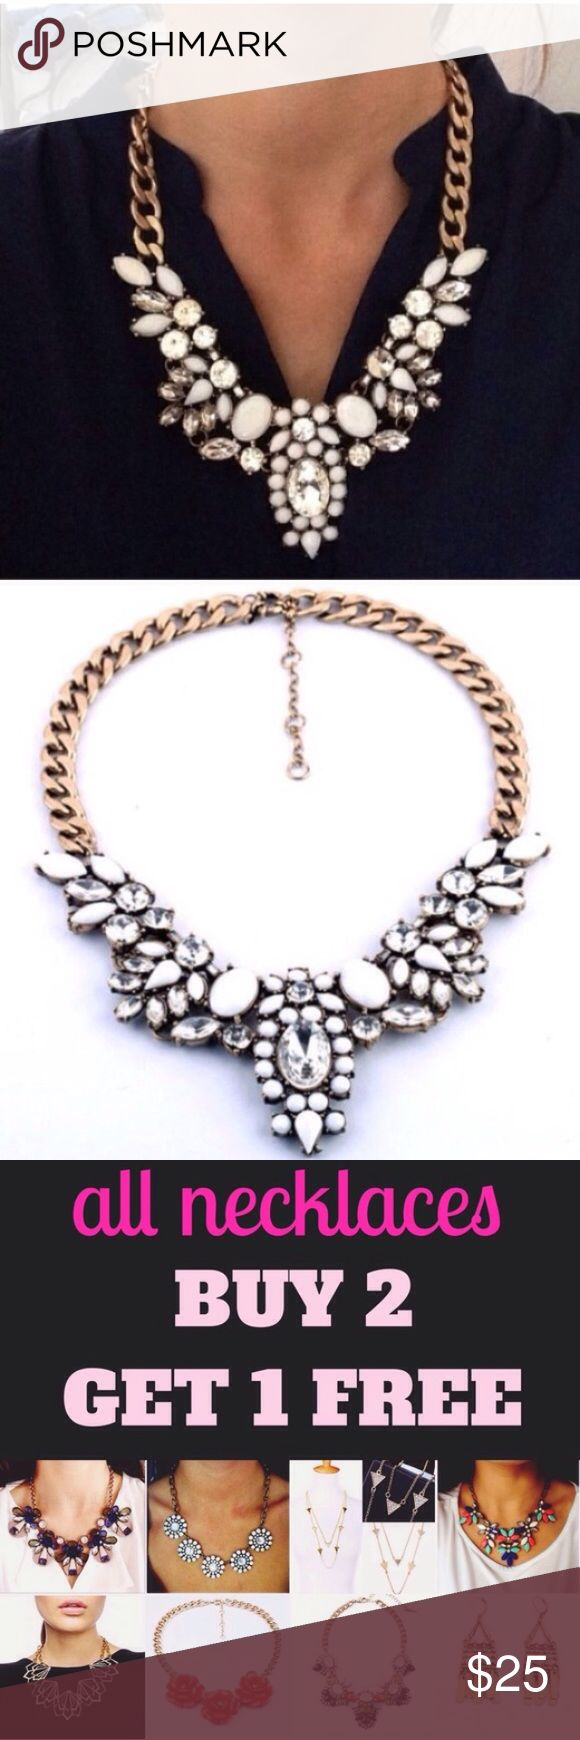 ❣RESTOCK❣ Crystal Floral White Statement Necklace Brand new! Adjustable! One of my all time best sellers! All jewlwry is buy 2 get 1 free! Jewelry Necklaces